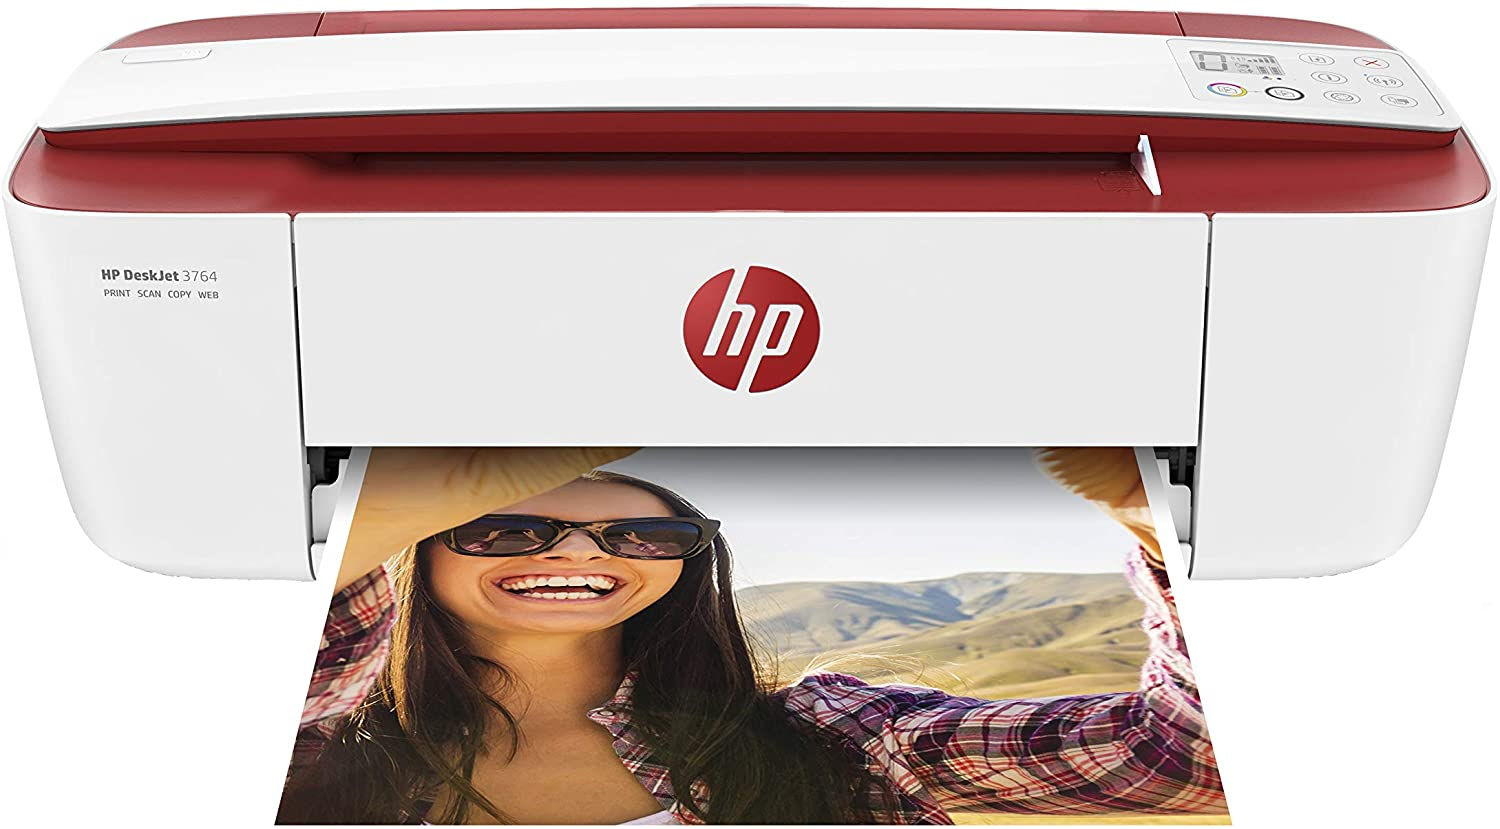 HP DeskJet 3764 All-in-One Printer, Instant Ink with 2 Months Trial Best Deskjet printers uk reviews